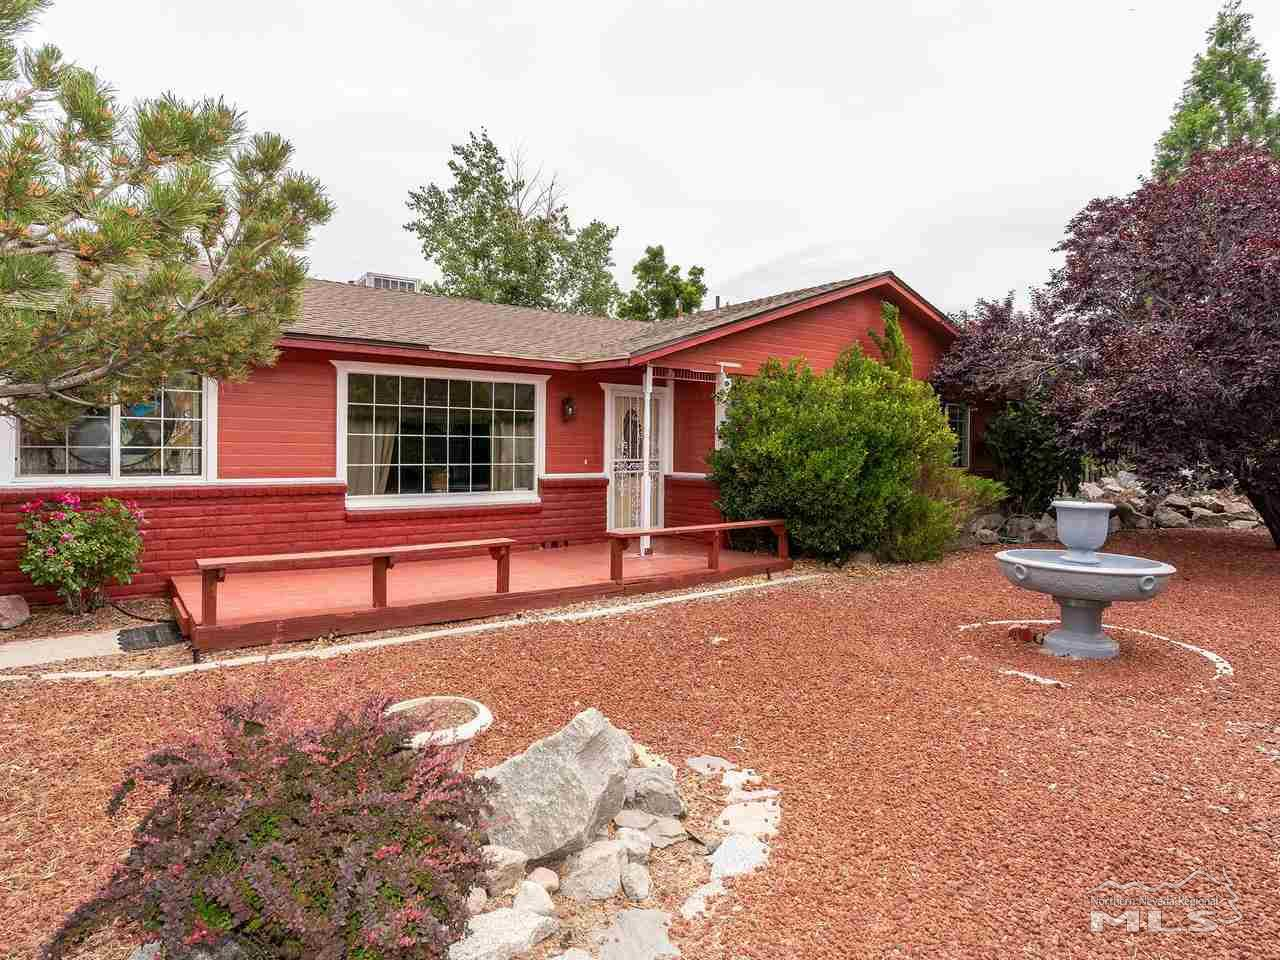 Image for 2420 Kiowa, Reno, NV 89506-9104